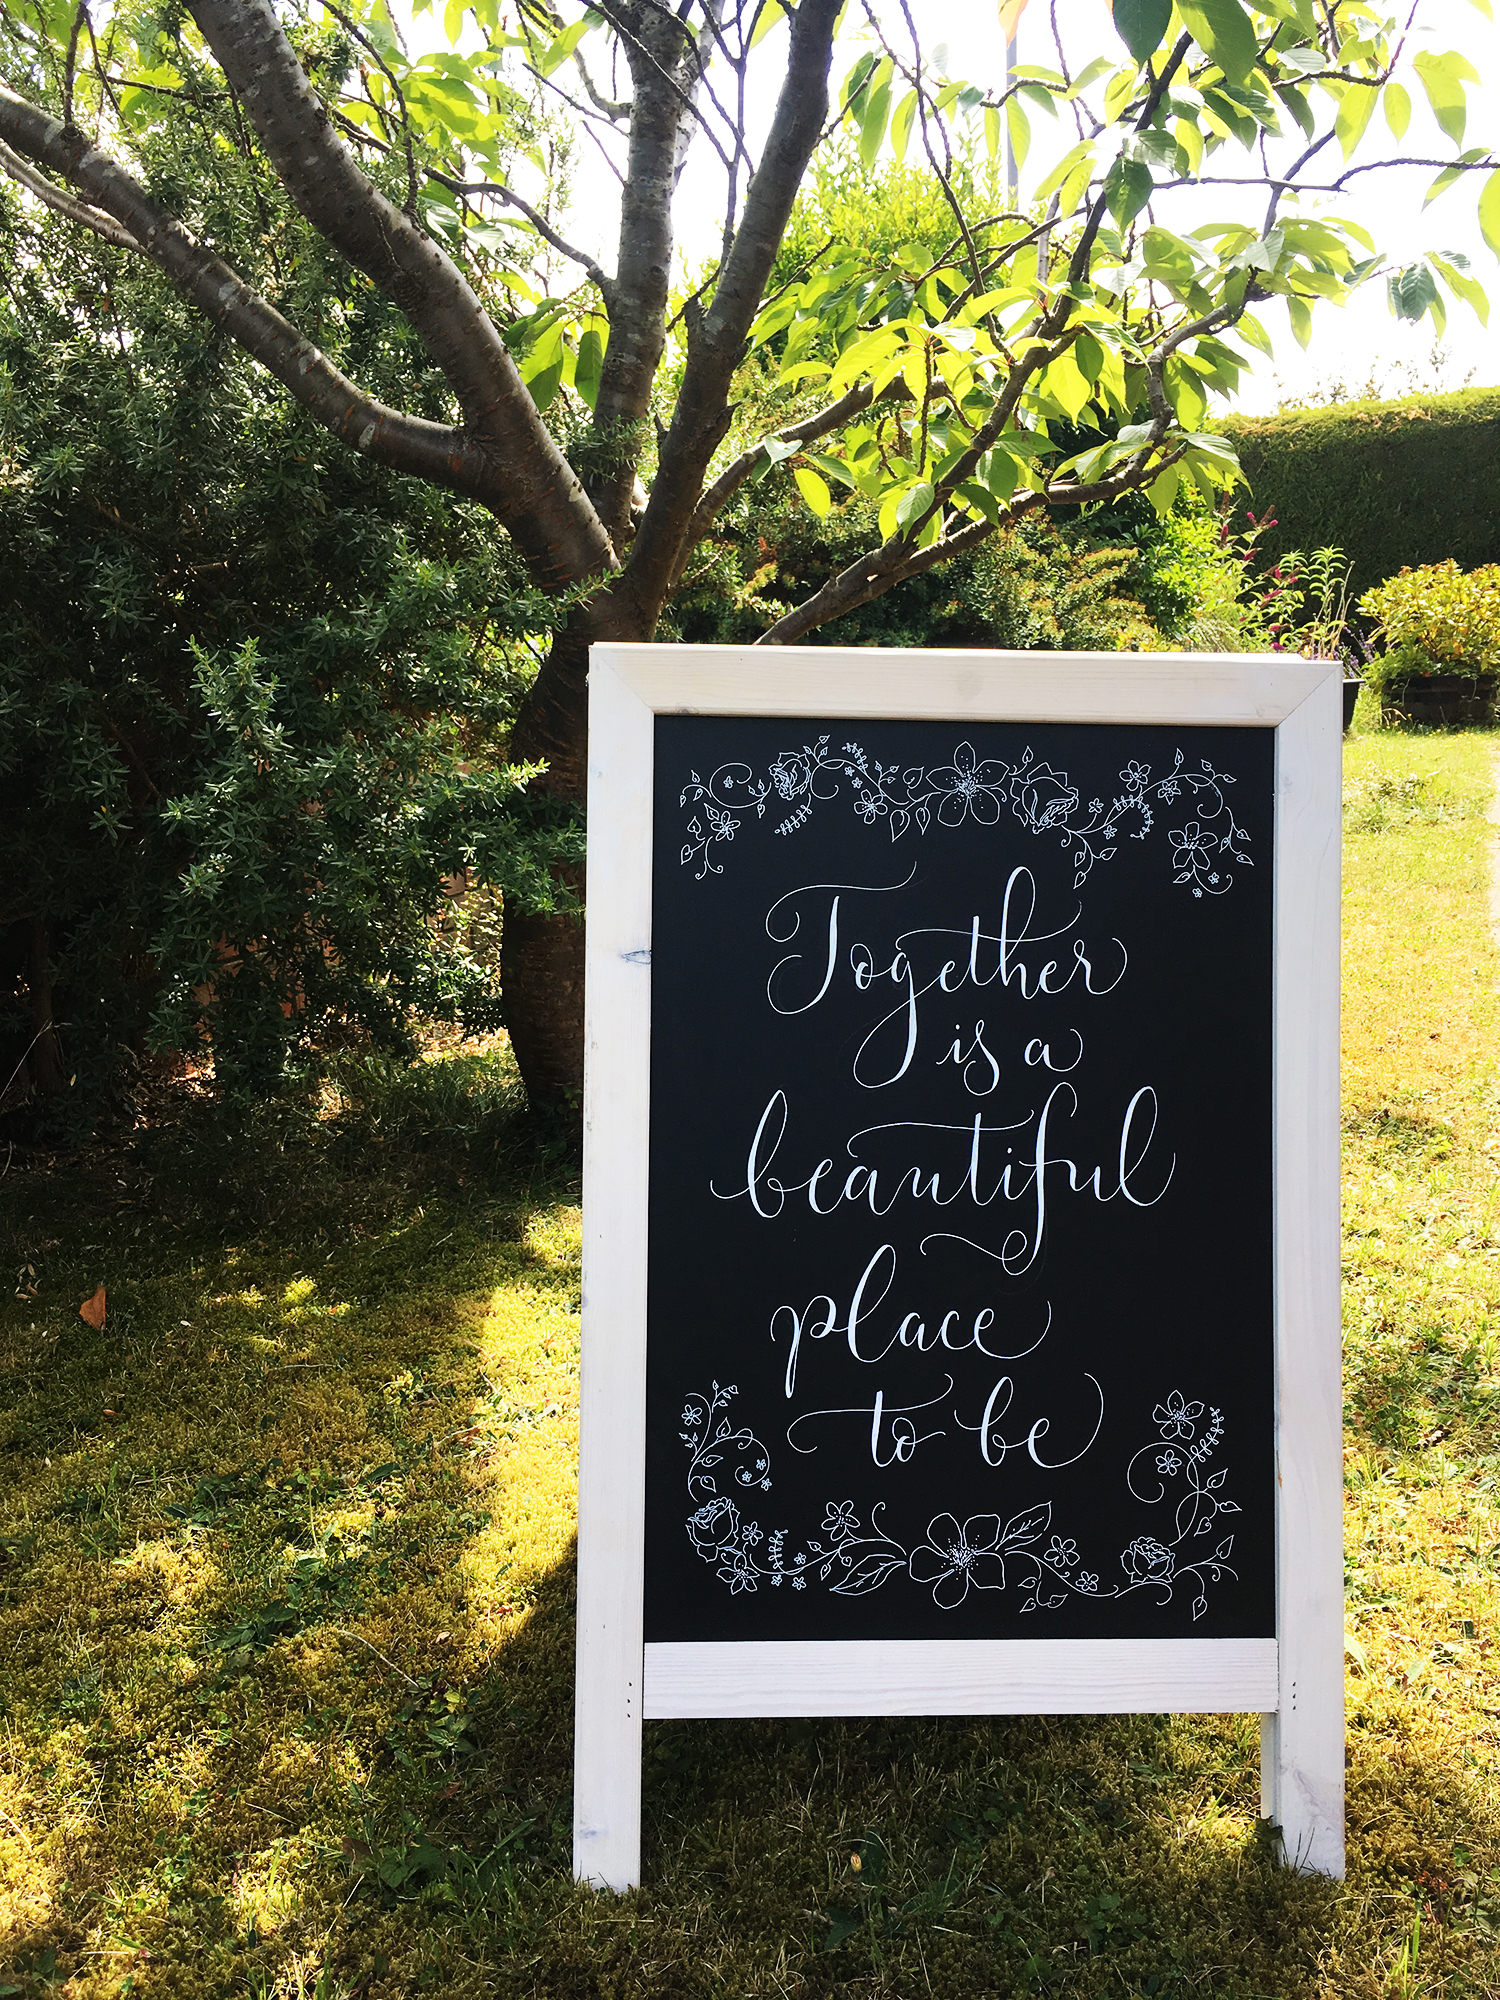 How to master chalkboard calligraphy